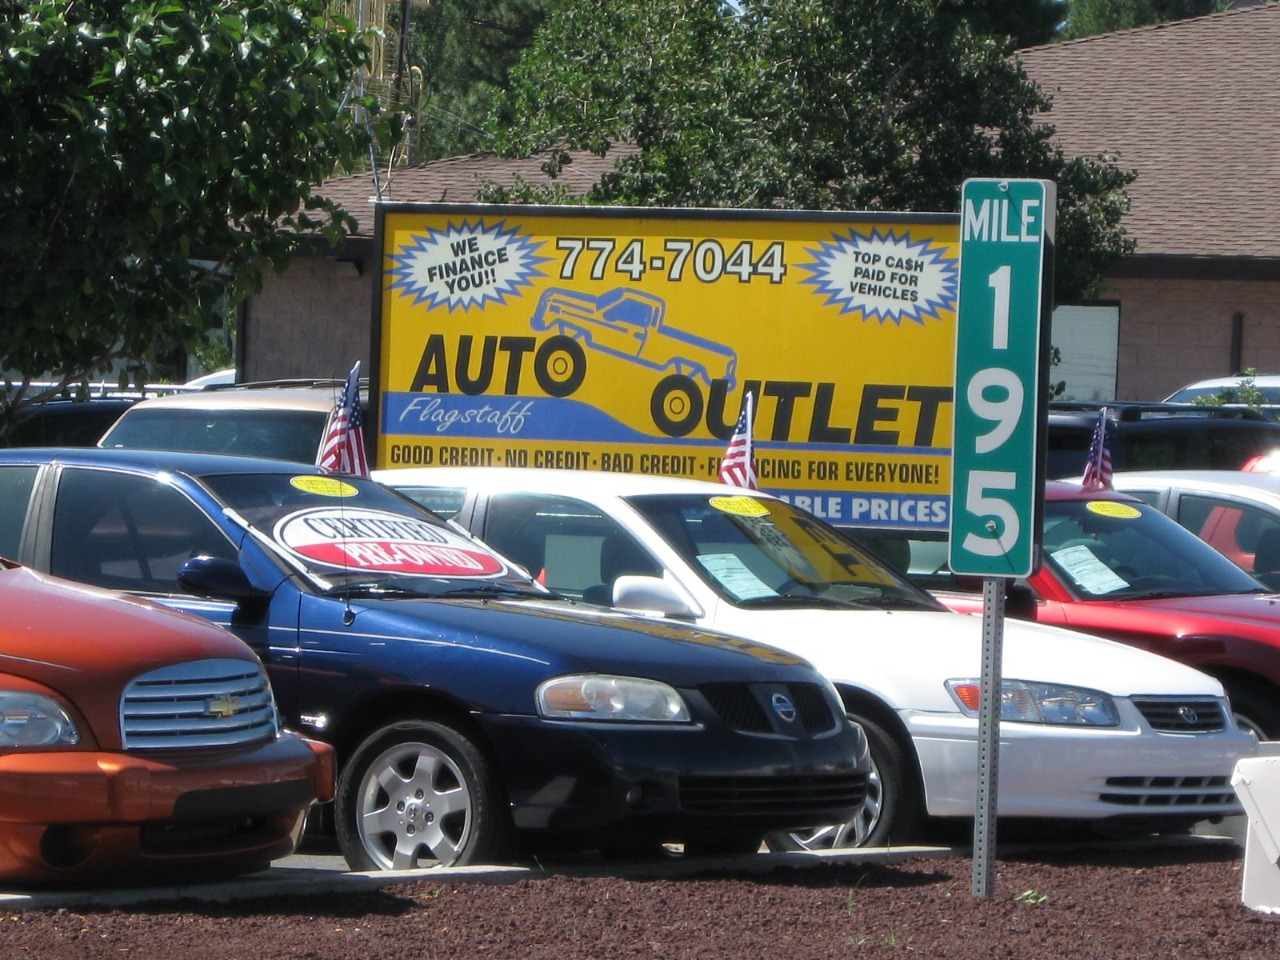 Flagstaff Auto Outlet